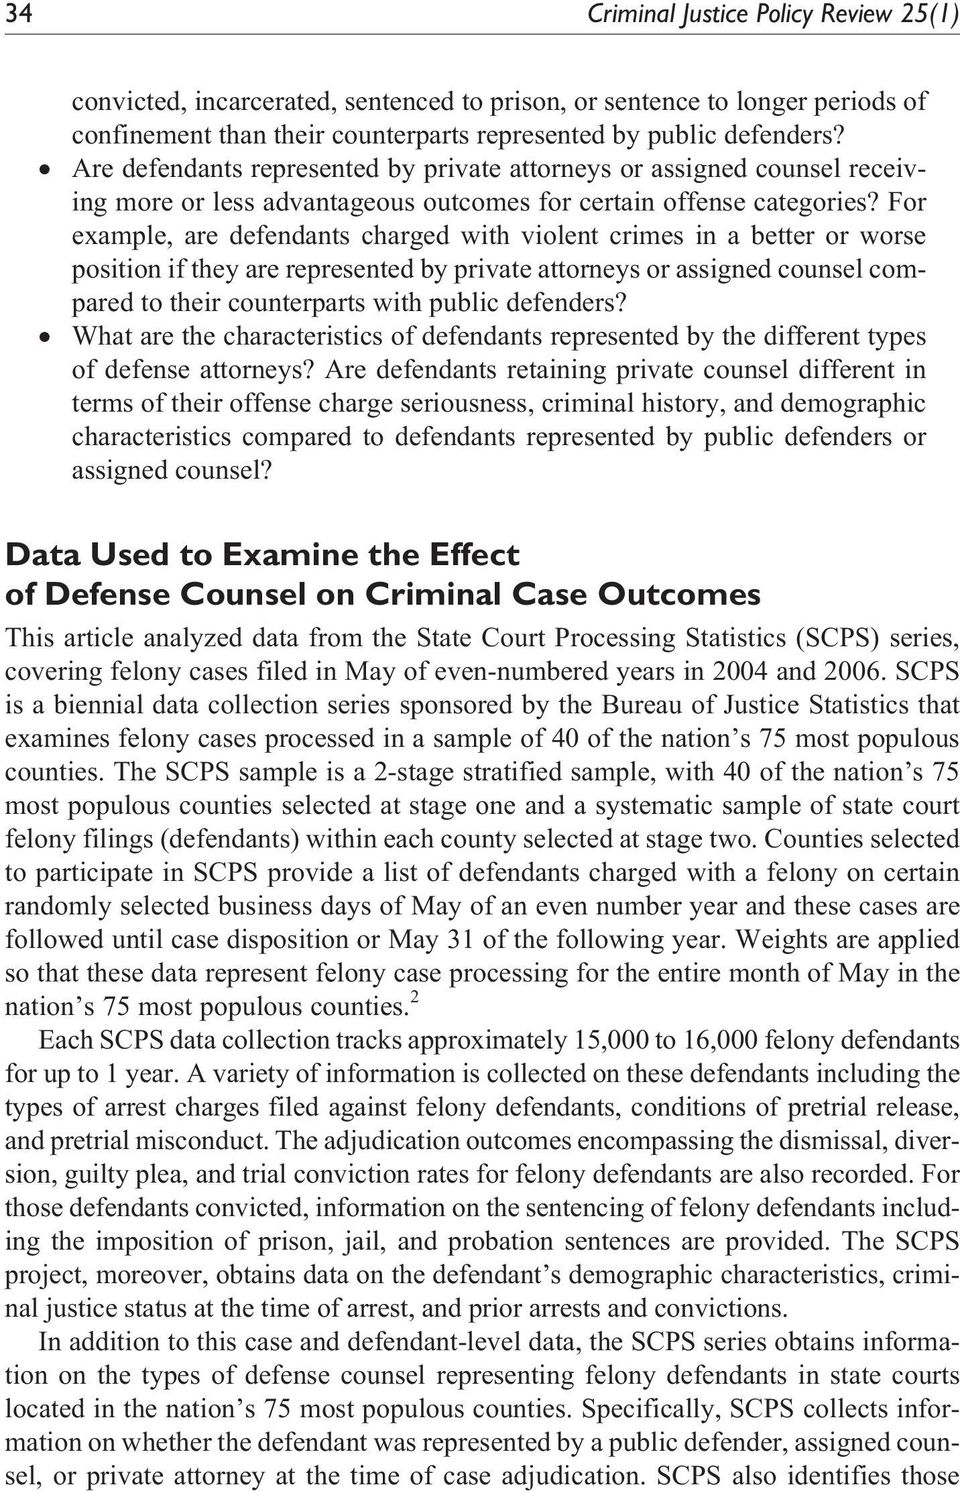 For example, are defendants charged with violent crimes in a better or worse position if they are represented by private attorneys or assigned counsel compared to their counterparts with public